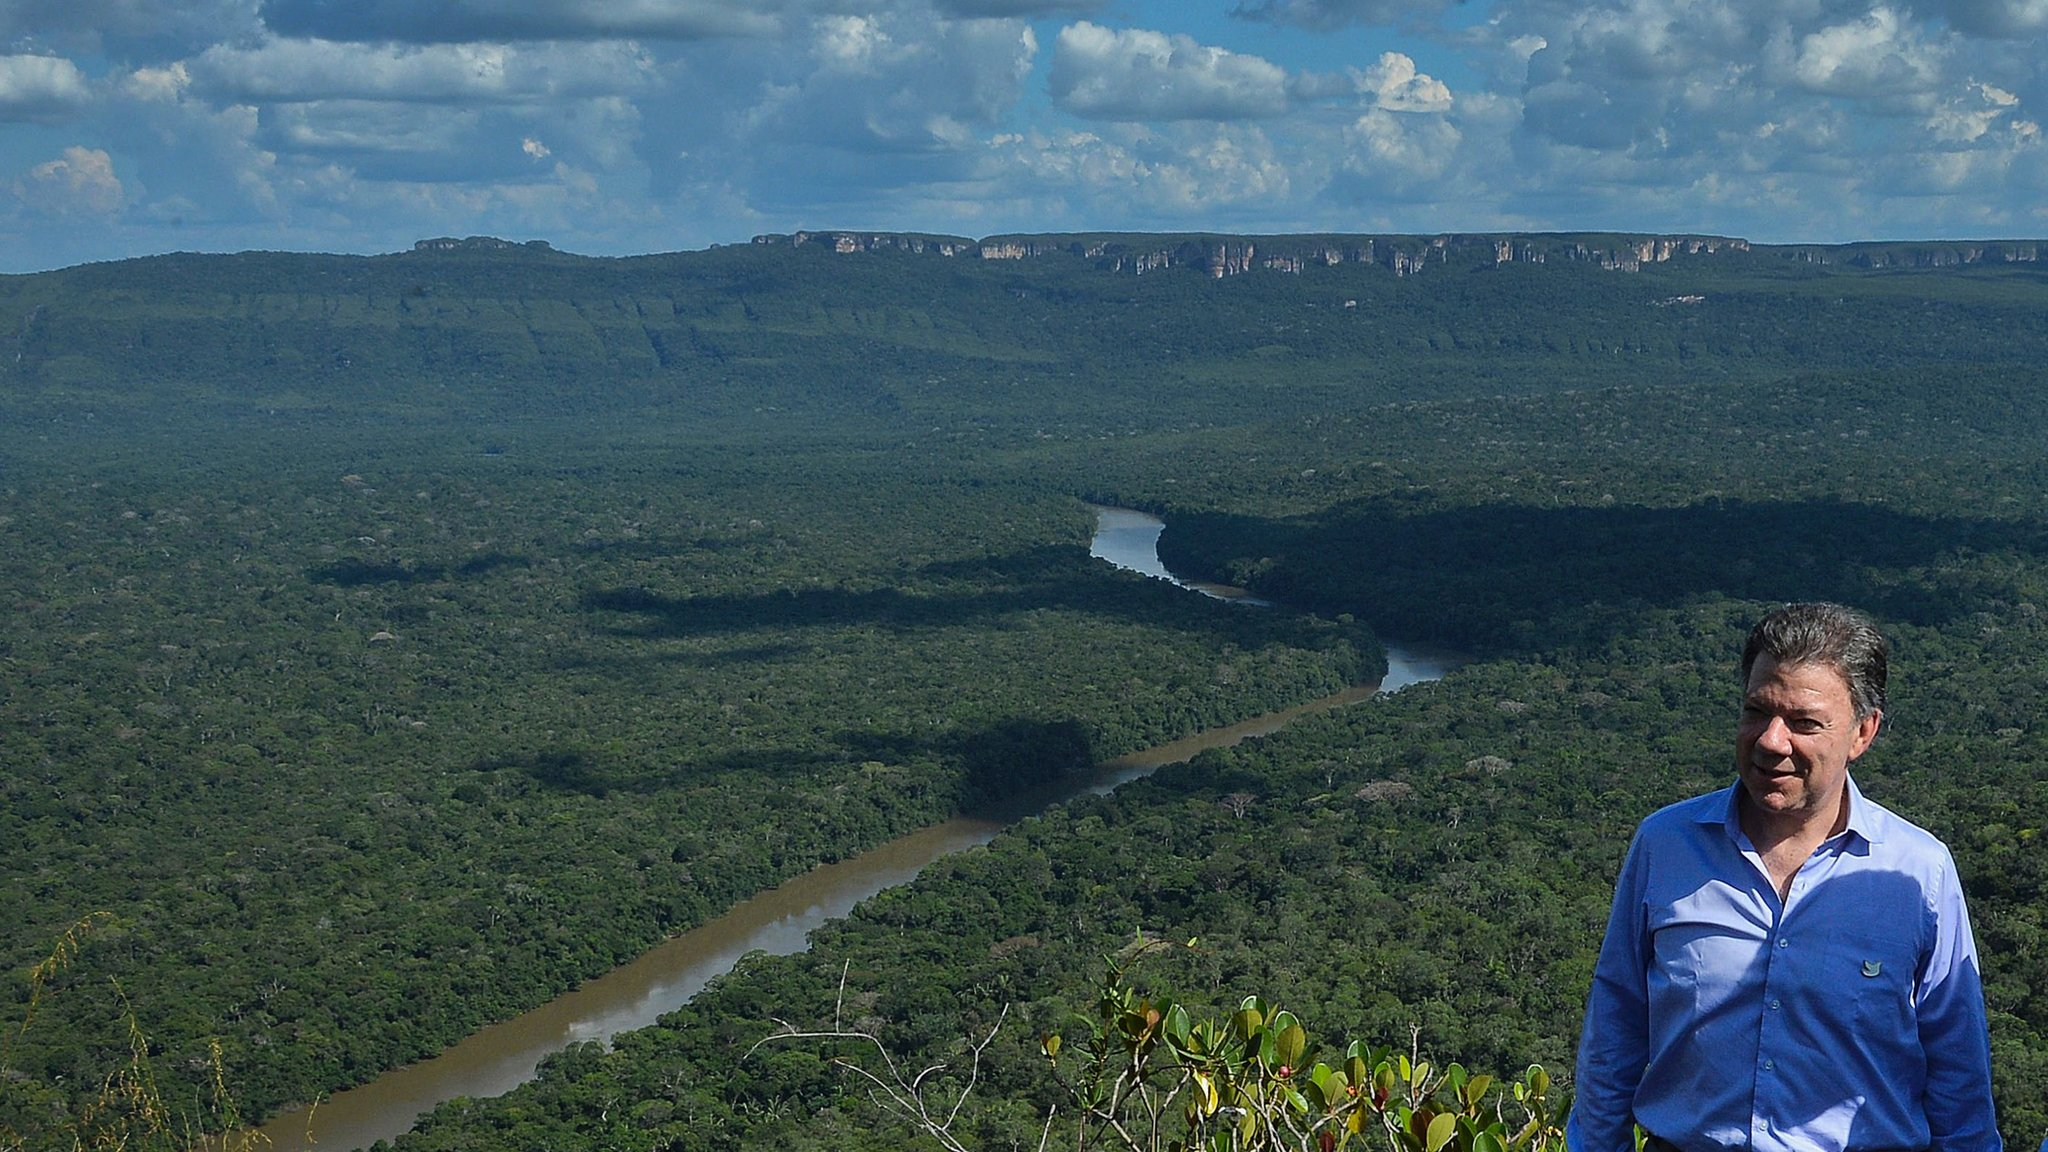 Colombia's Chiribiquete national park to be extended